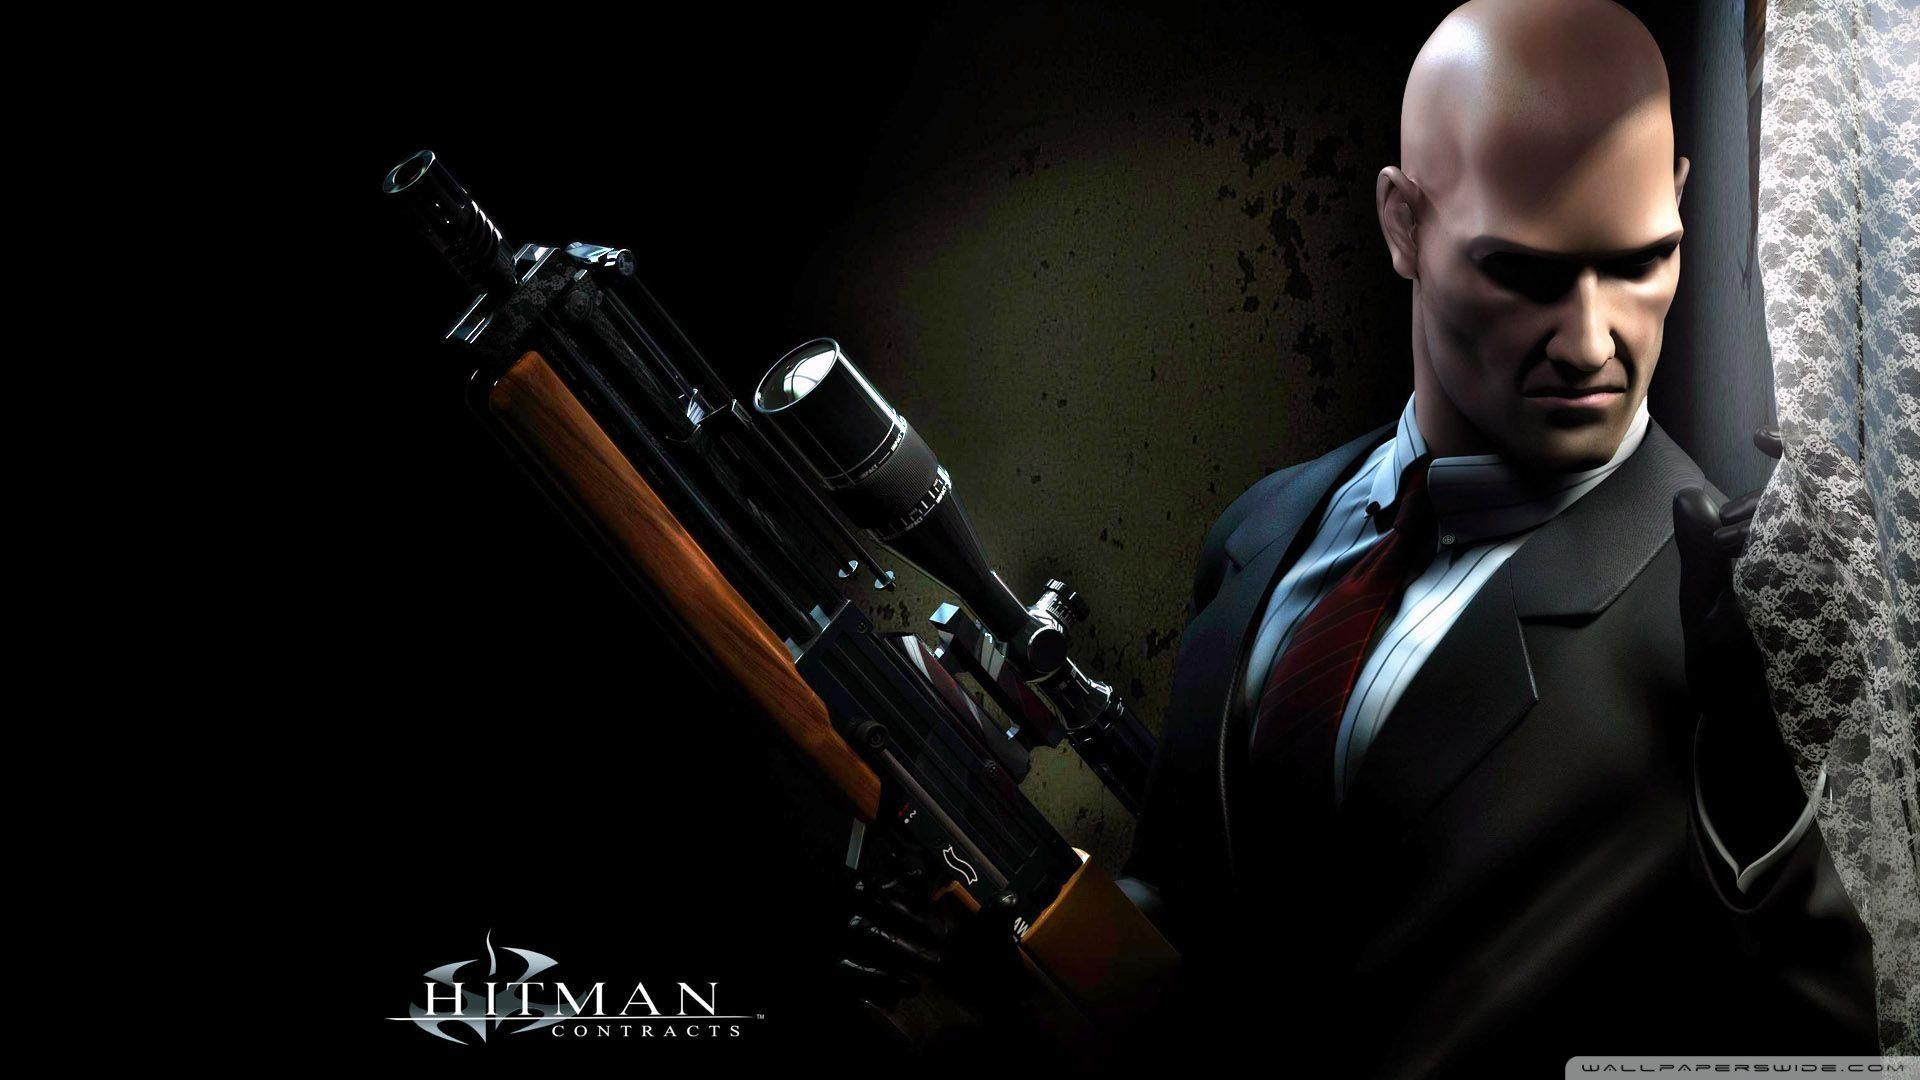 Hitman Agent 47 Hd High Definition Wallpapers 2 Hitman Agent 47 Hitman Agent 47